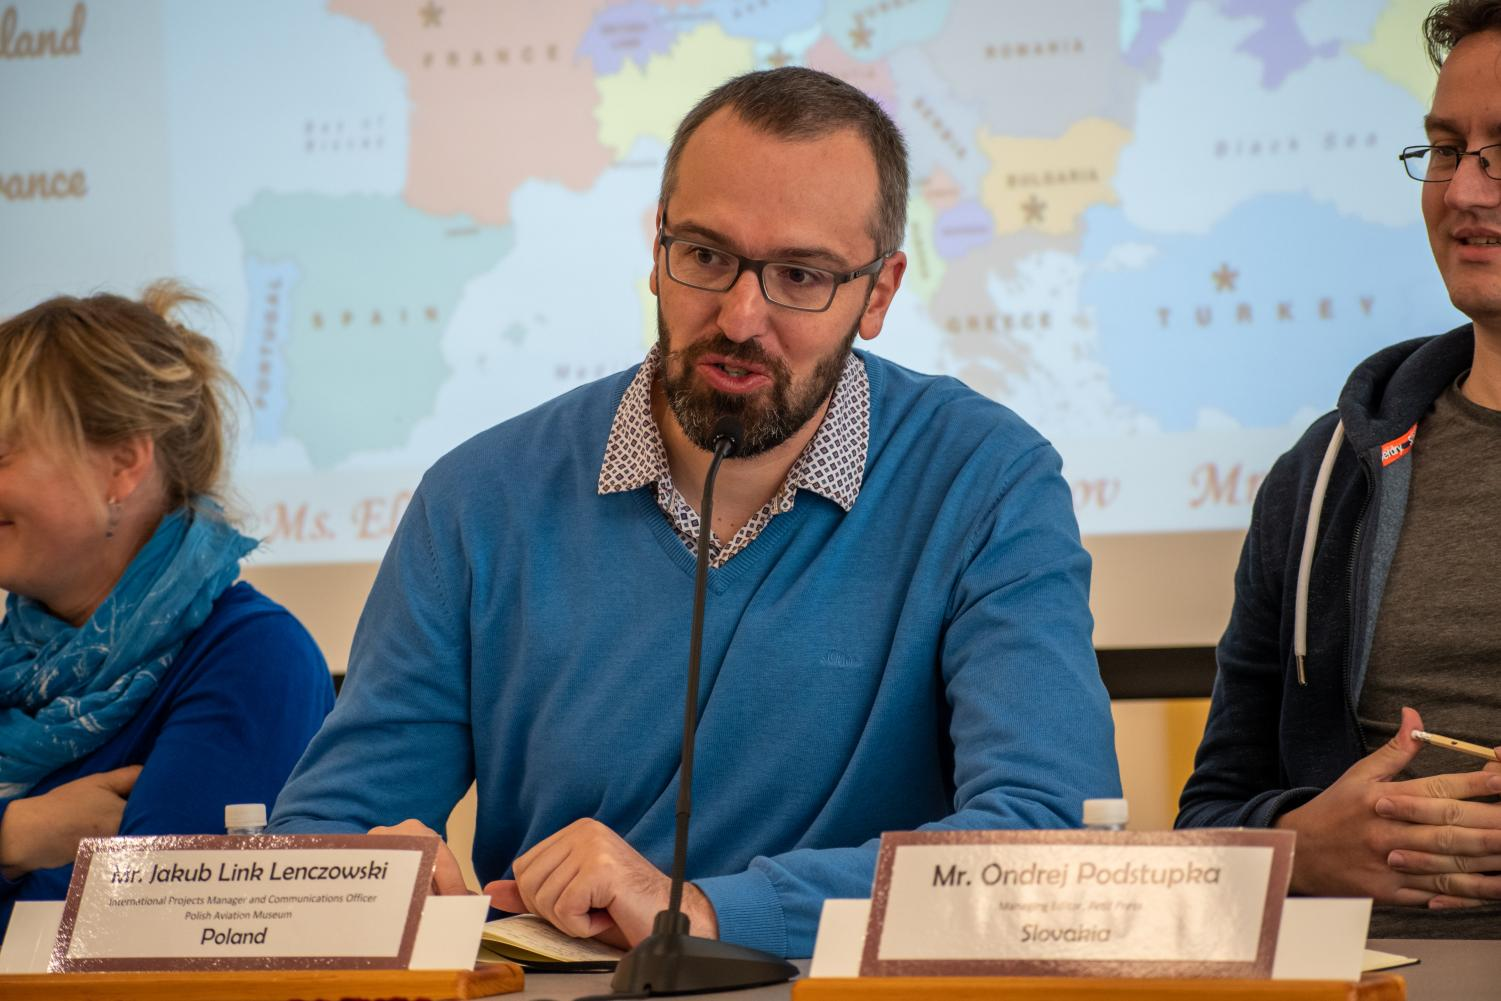 Jakub Link Lenczowski, Communications Officer for the Polish Aviation Museum, spoke to students as a part of a panelist of international journalist and communications experts. The topic of the discussion was media literacy in the digital age.